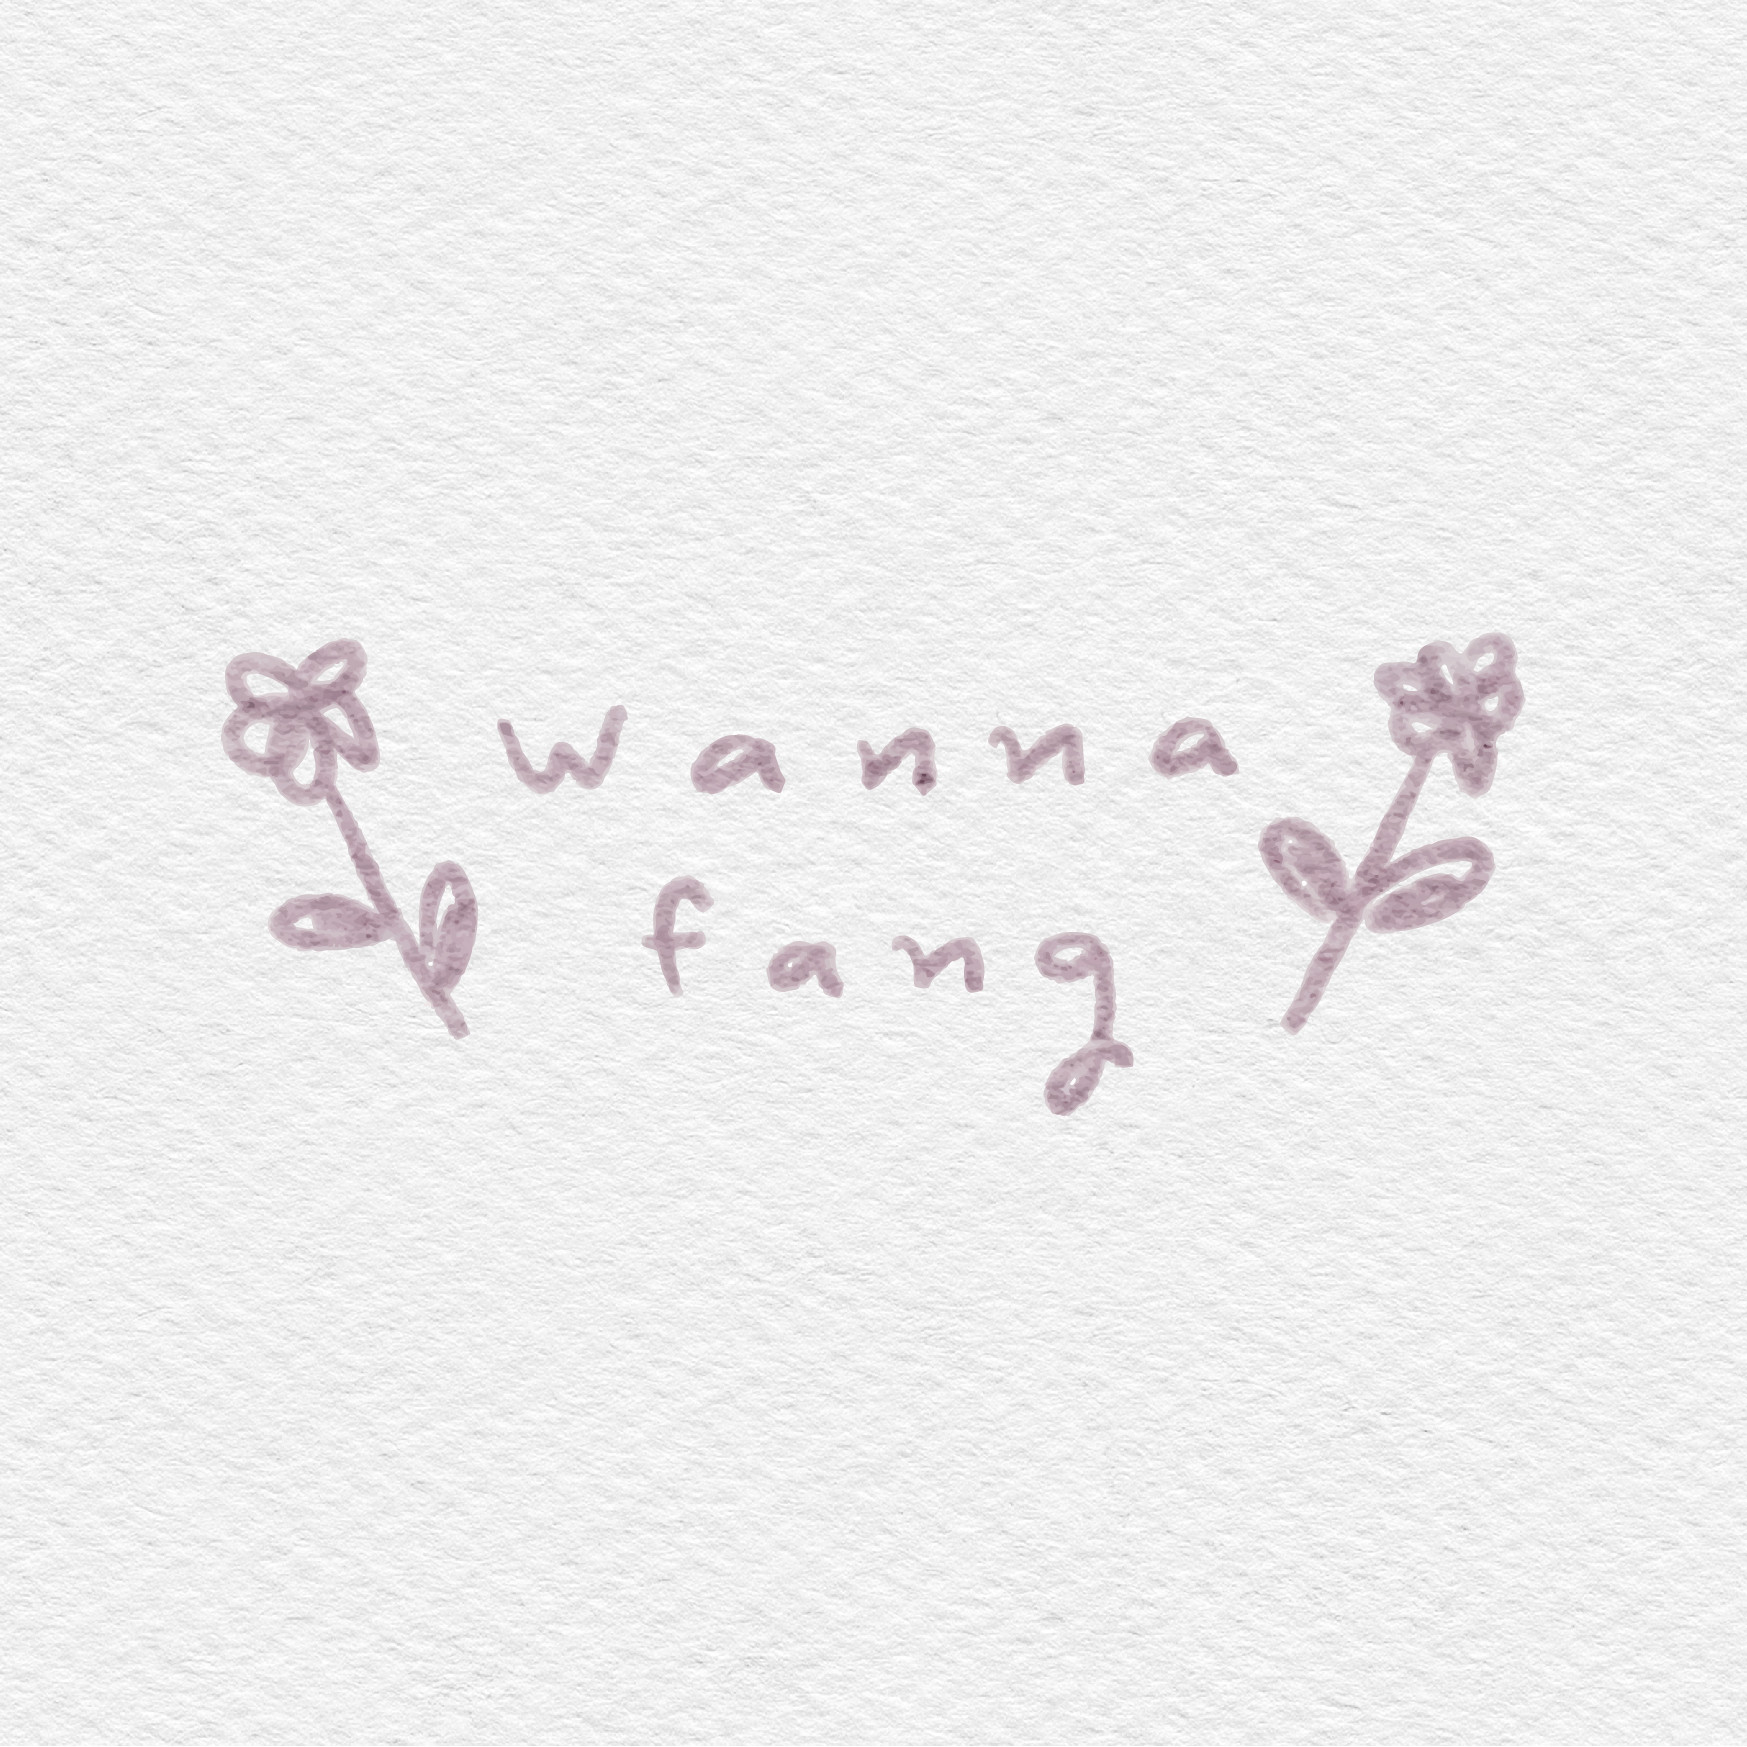 Wannafang's profile picture